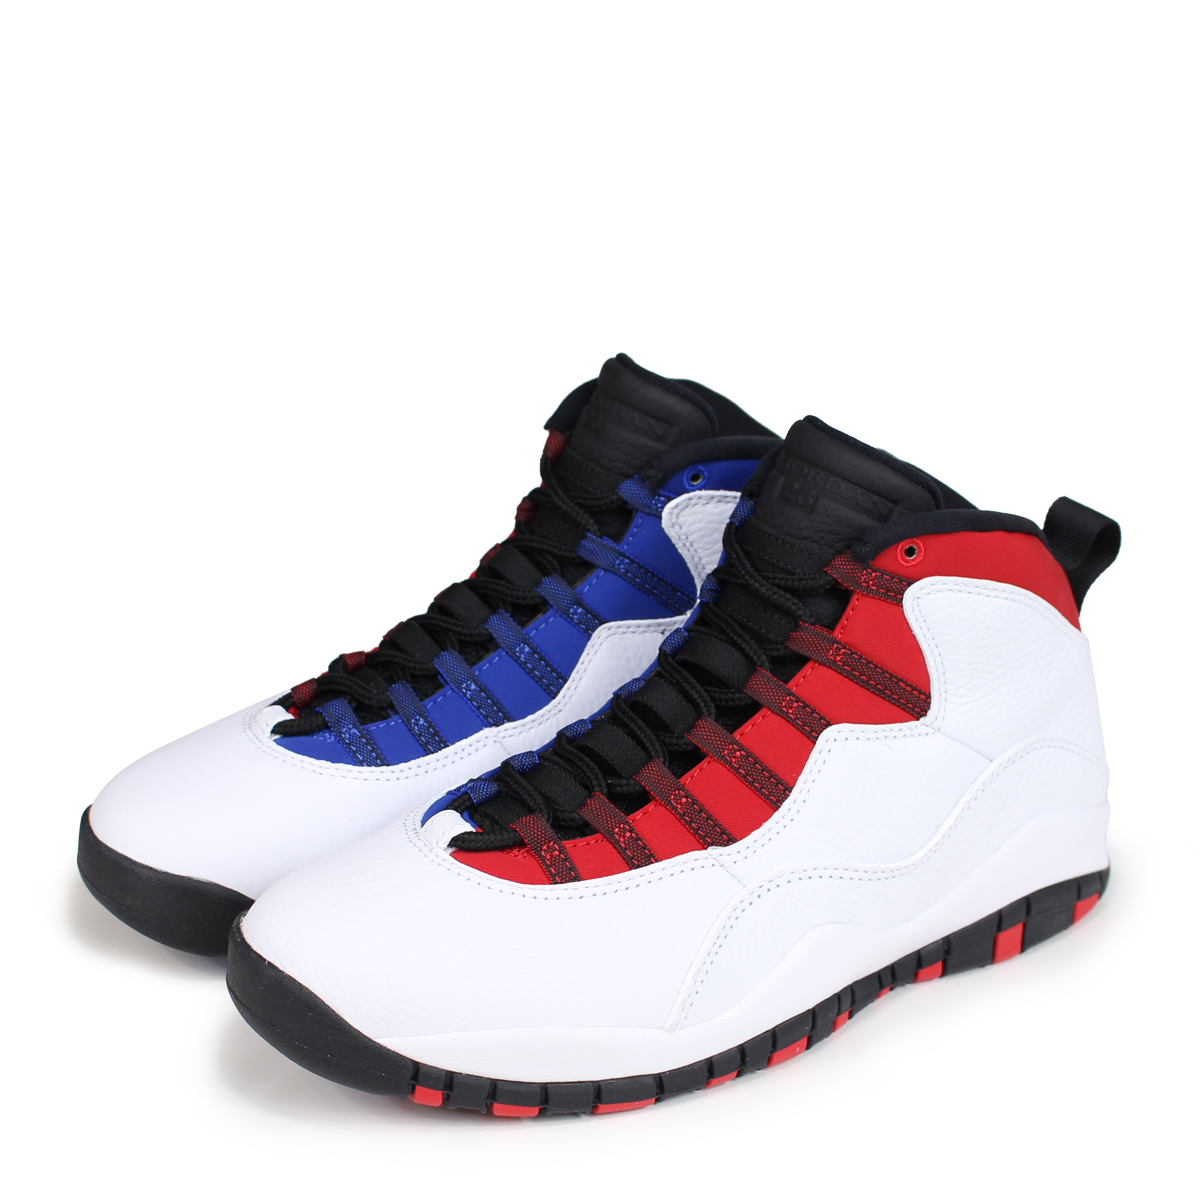 0a2cd338689f NIKE AIR JORDAN 10 RETRO RUSSELL WESTBROOK Nike Air Jordan 10 nostalgic  sneakers men 310